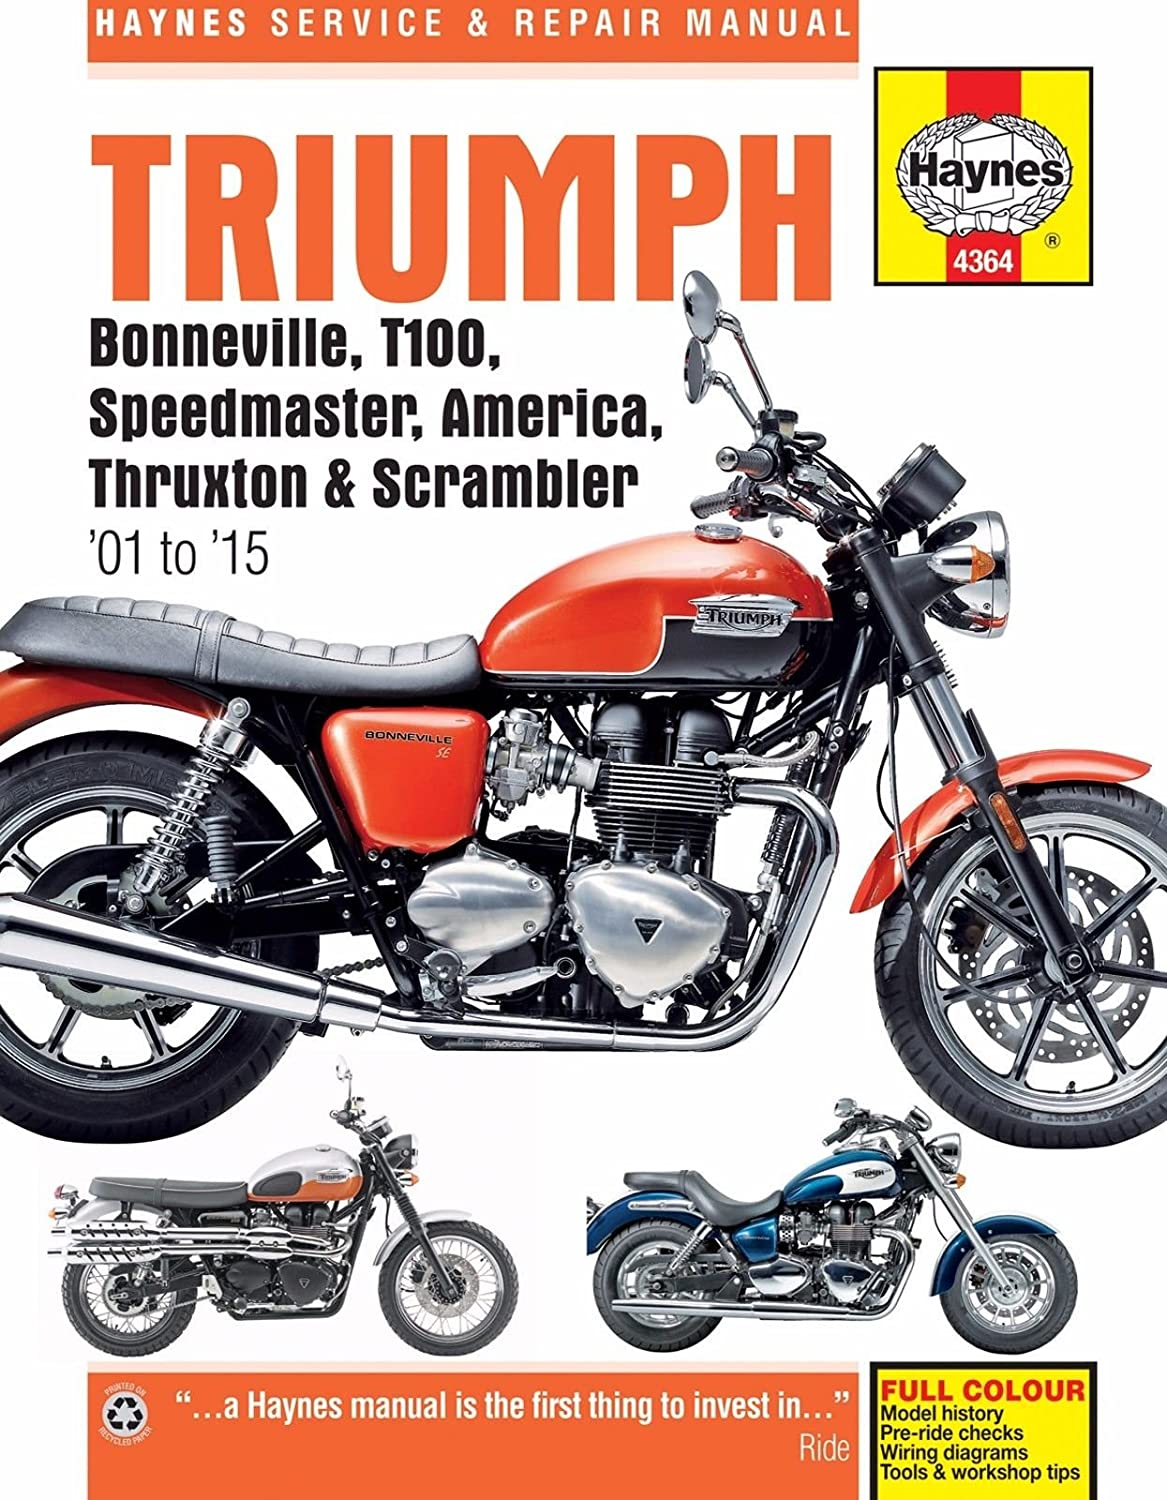 2001 2015 Triumph Bonneville T100 America Speedmaster Electrical Wiring Diagrams Tiger Explorer Thruxton Scrambler Repair Manual Automotive